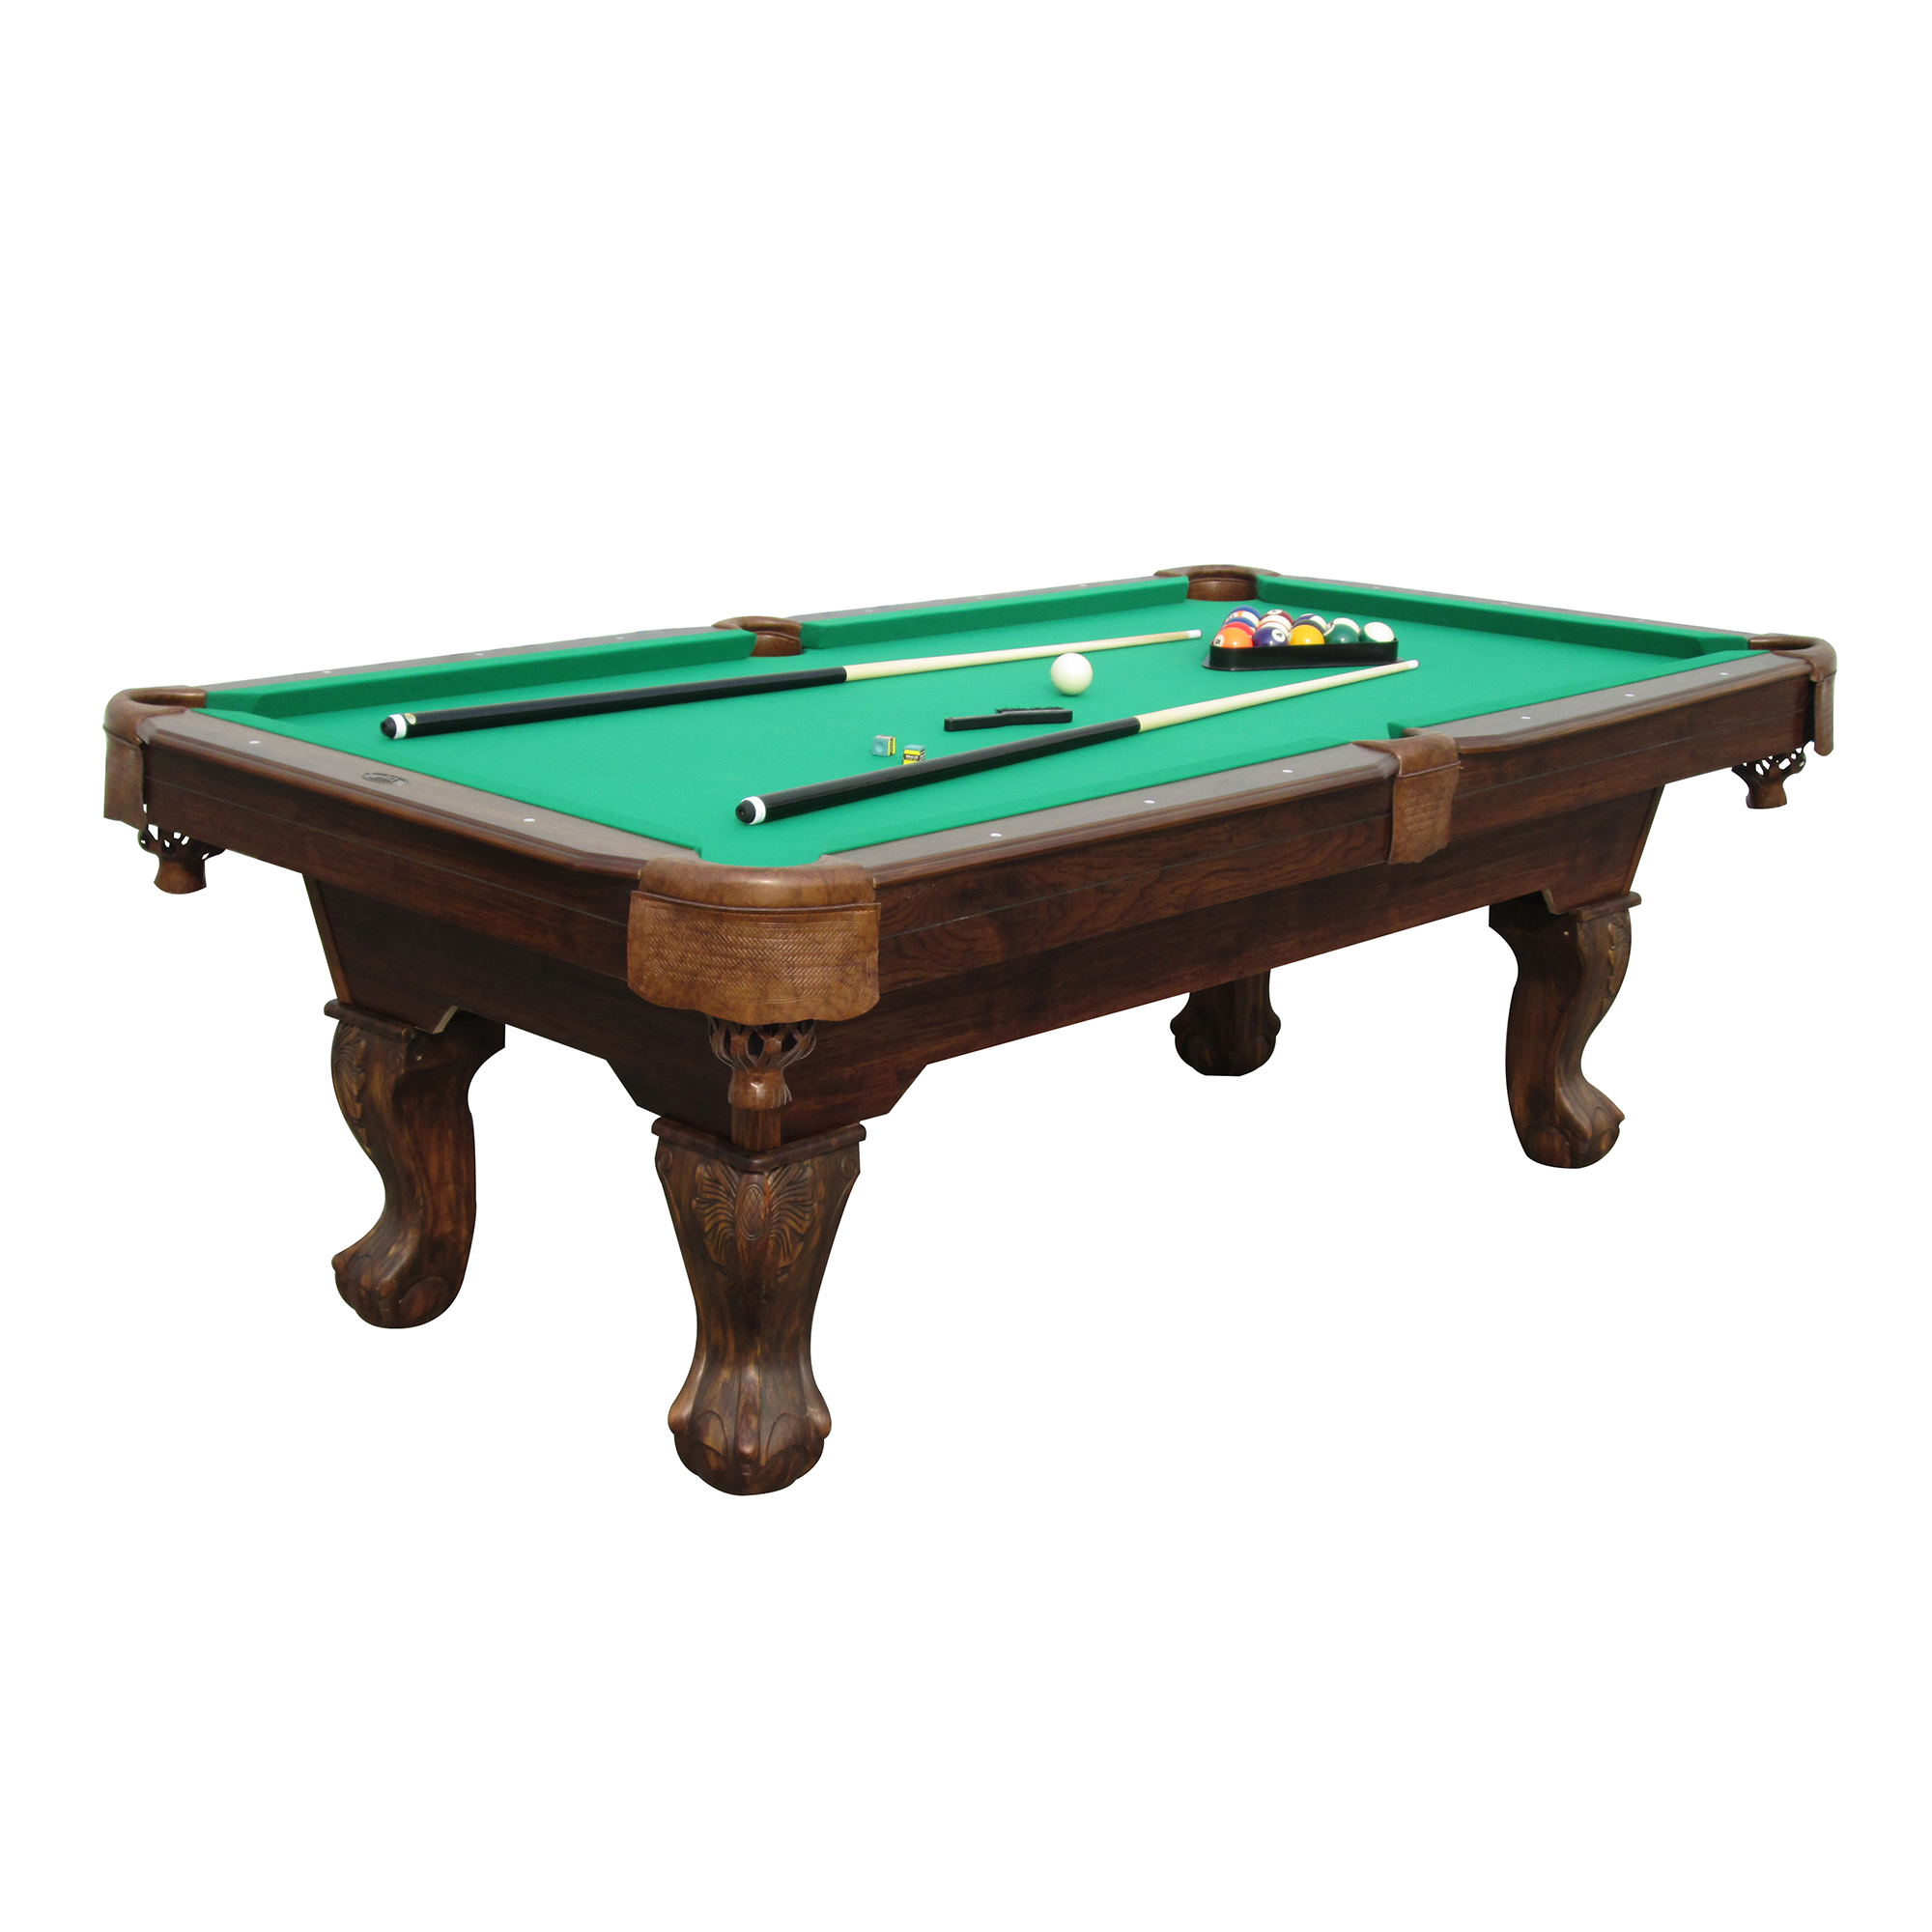 original new billiardpocket accessories cover com pool page table covers